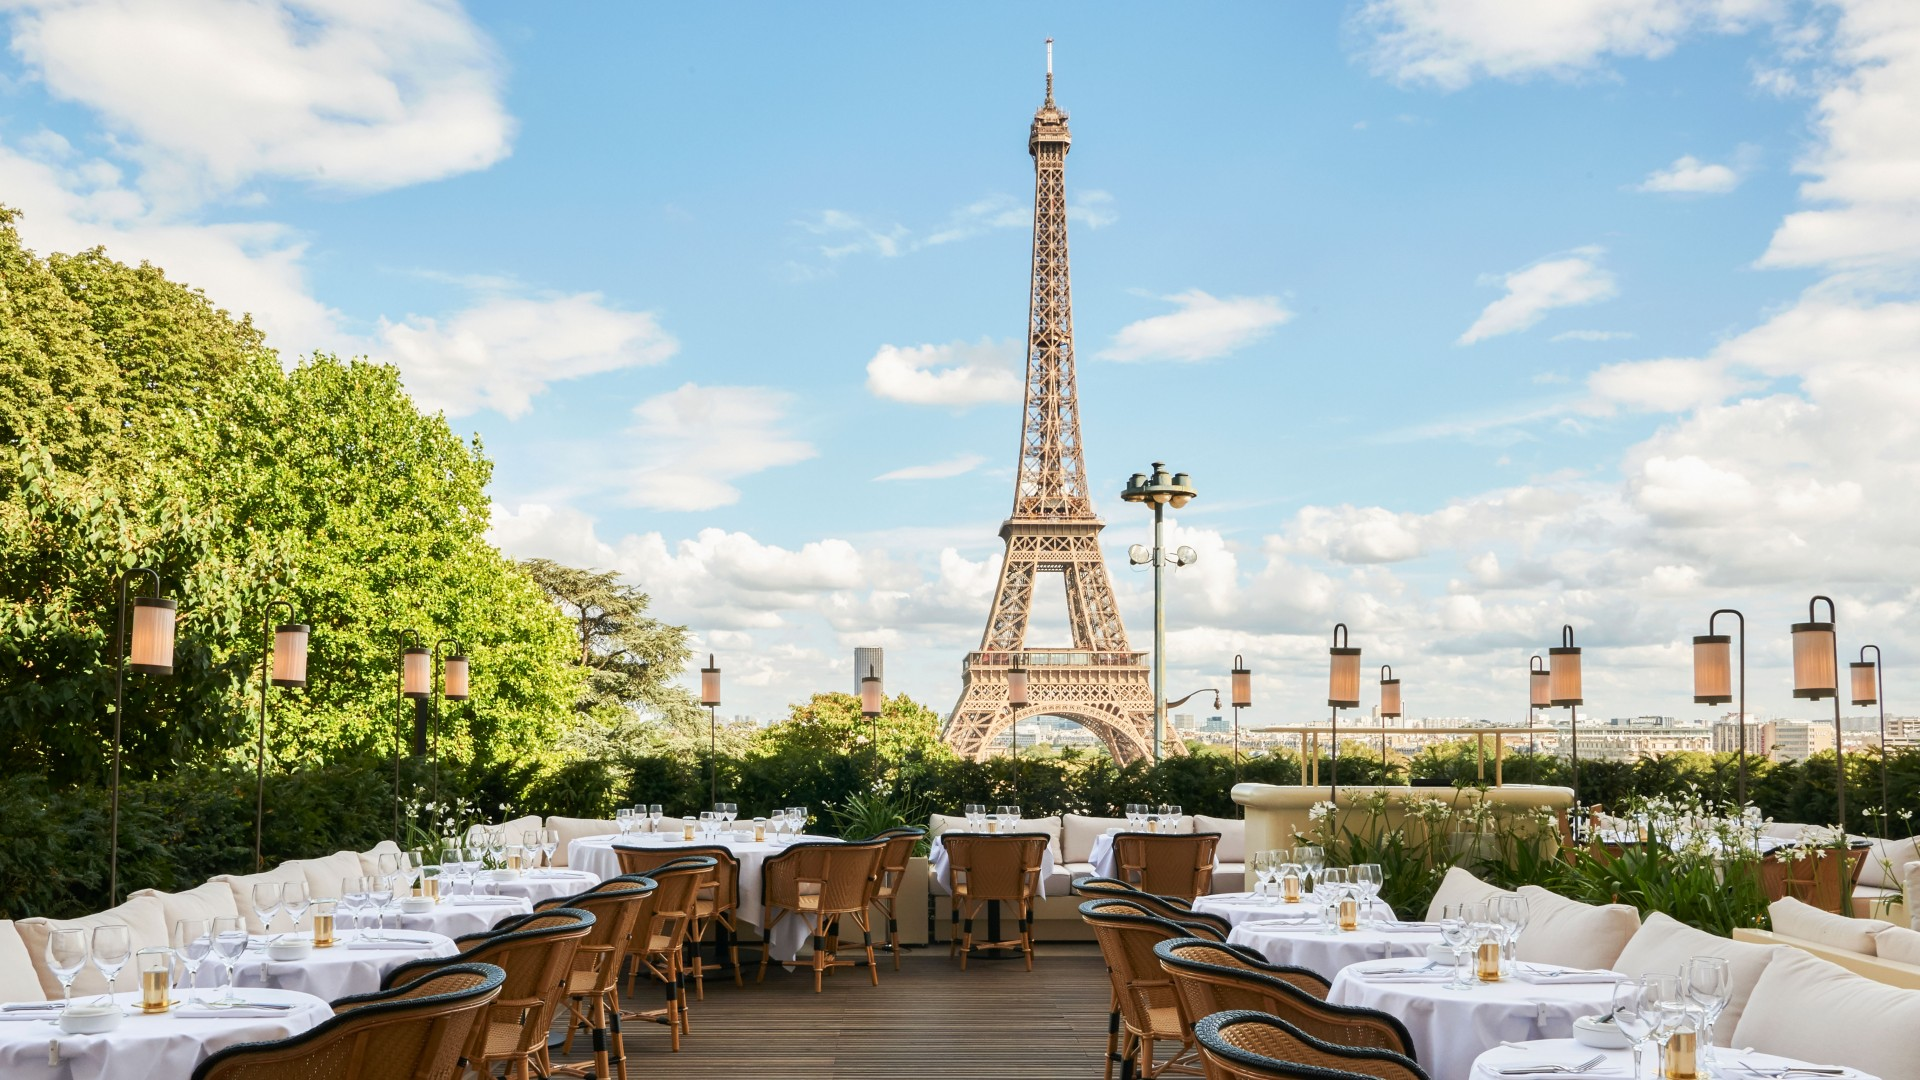 Image result for girafe paris view